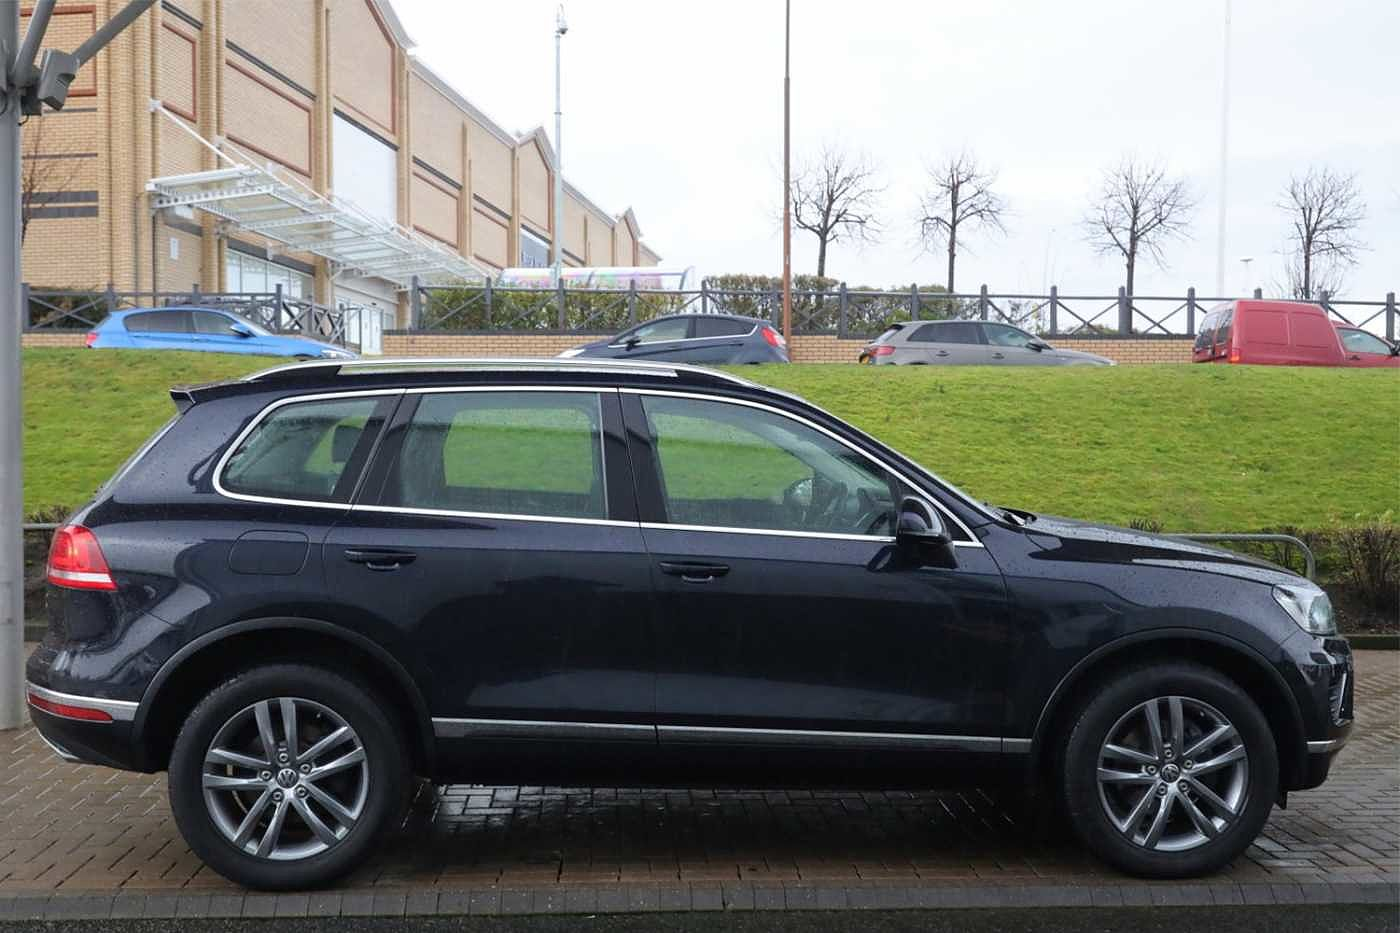 Volkswagen Touareg for sale